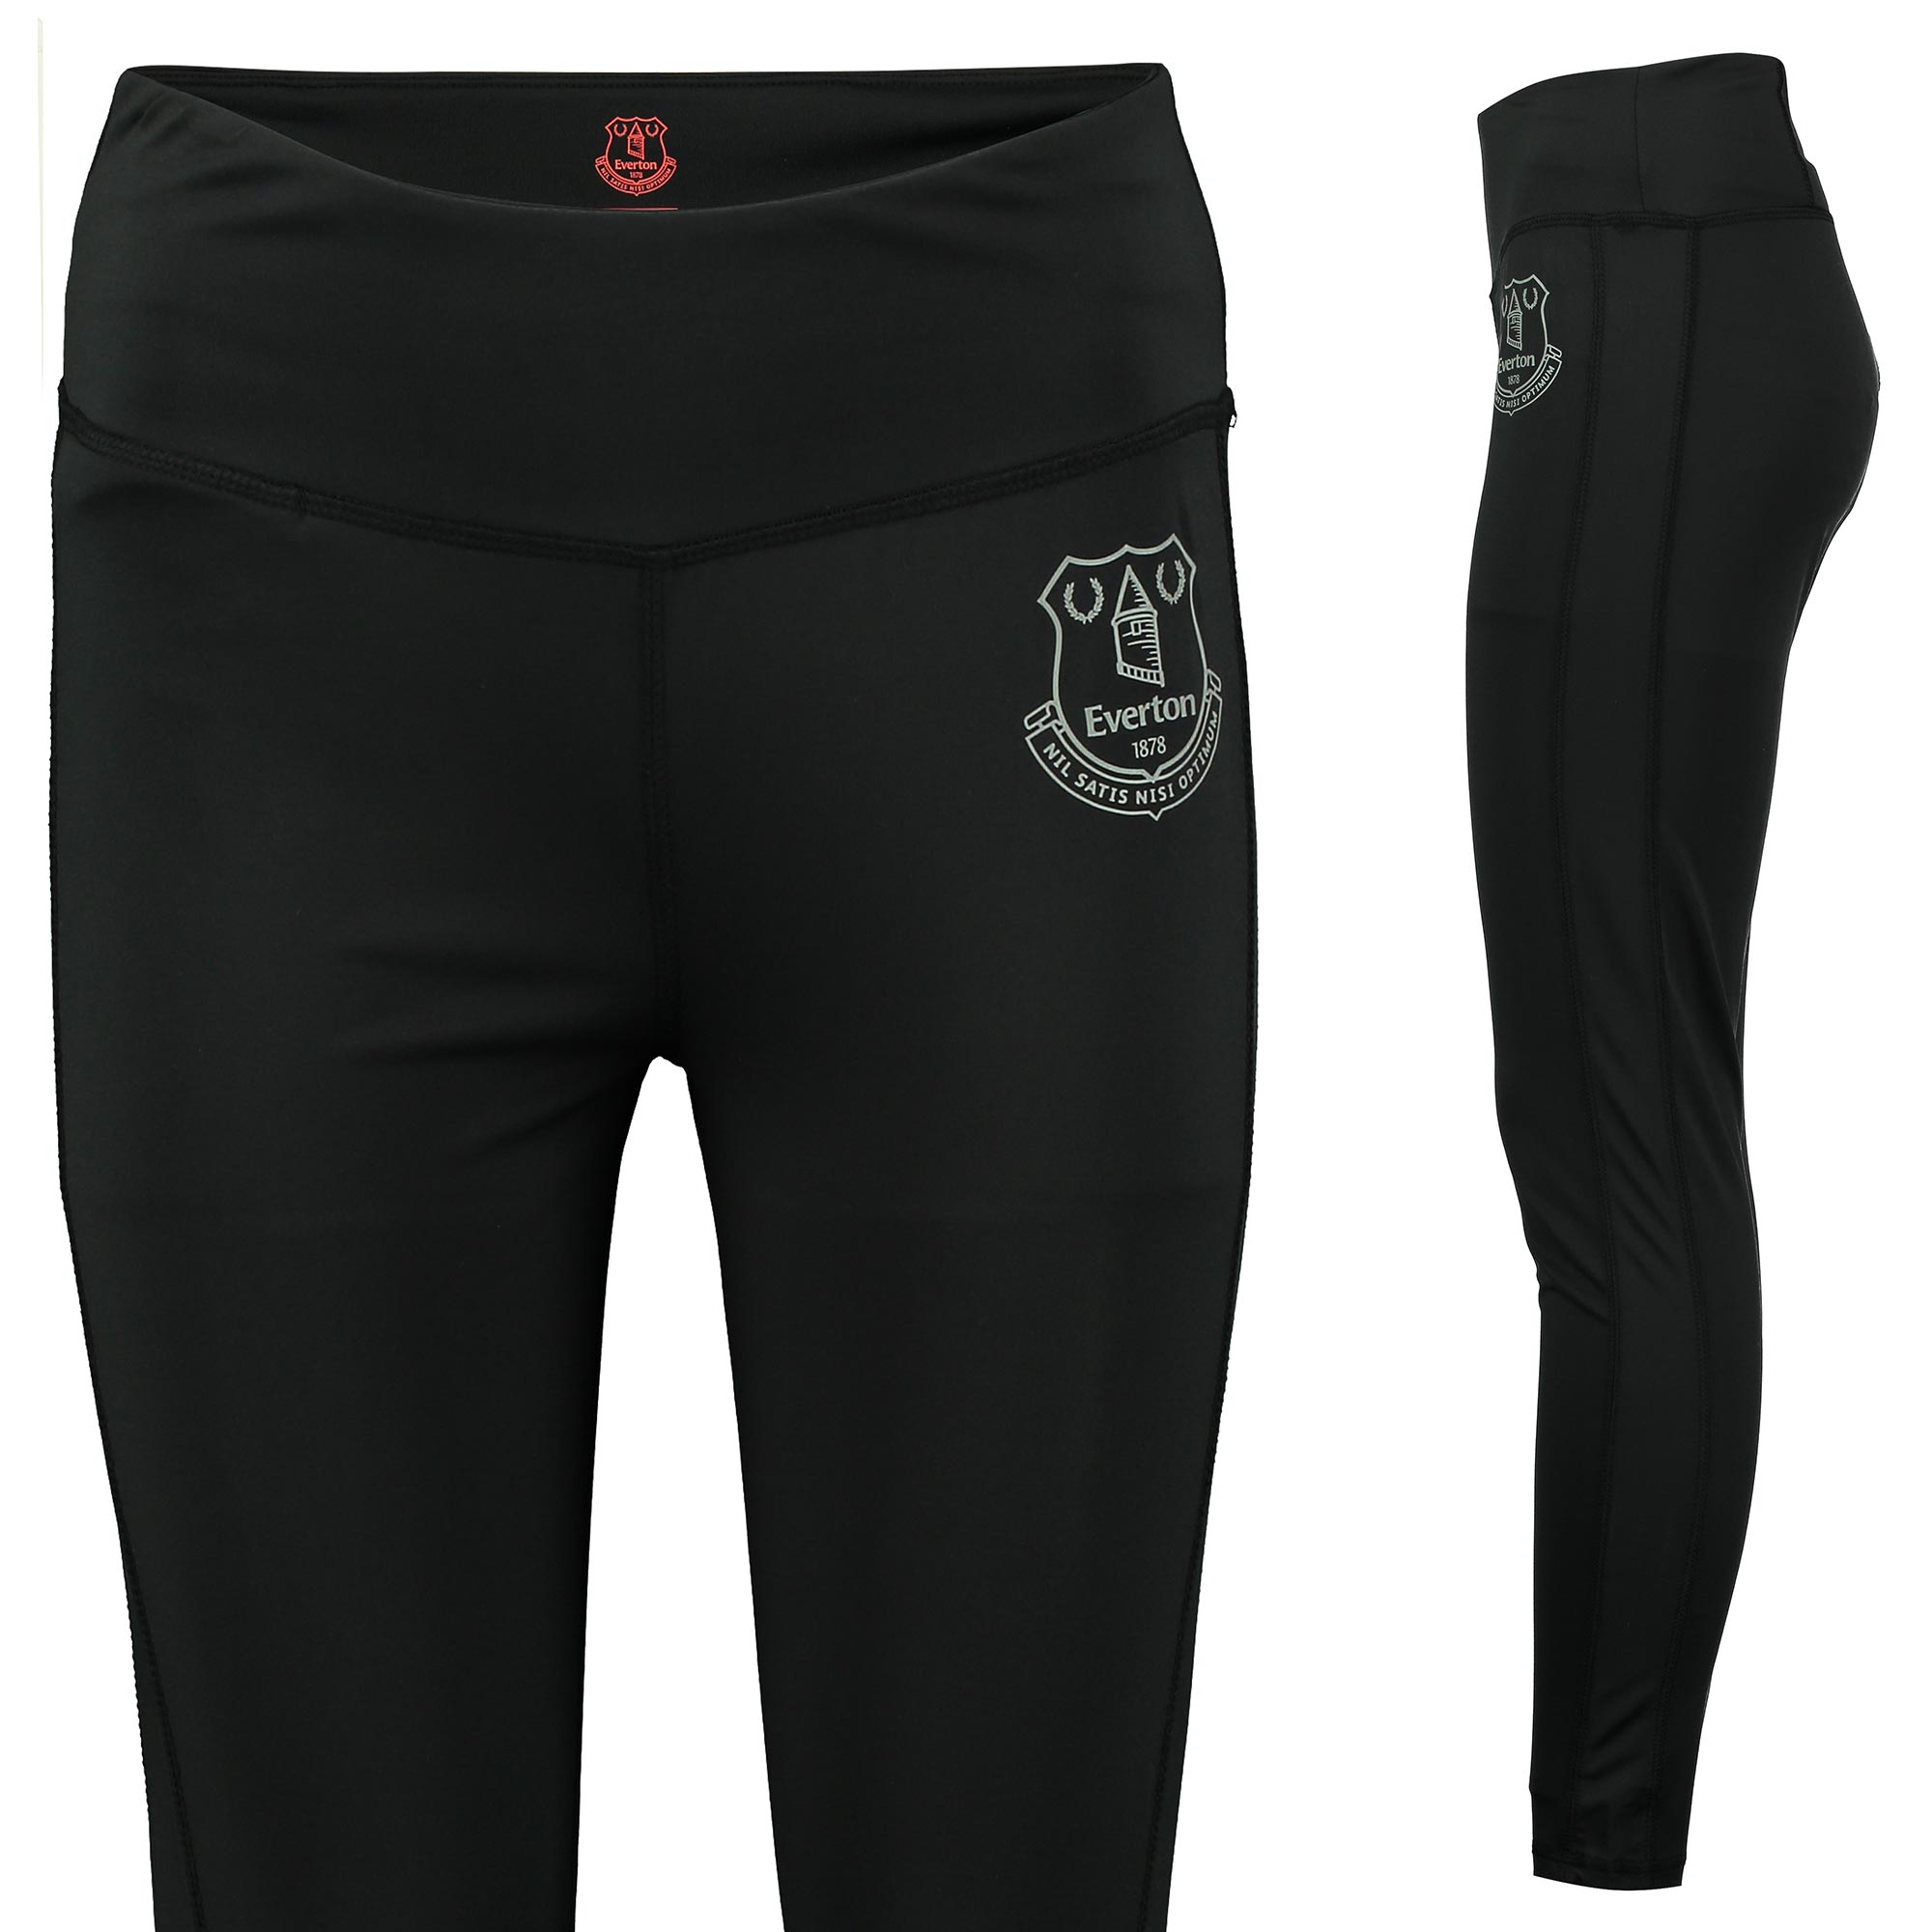 Everton Sport Leggings - Black - Womens